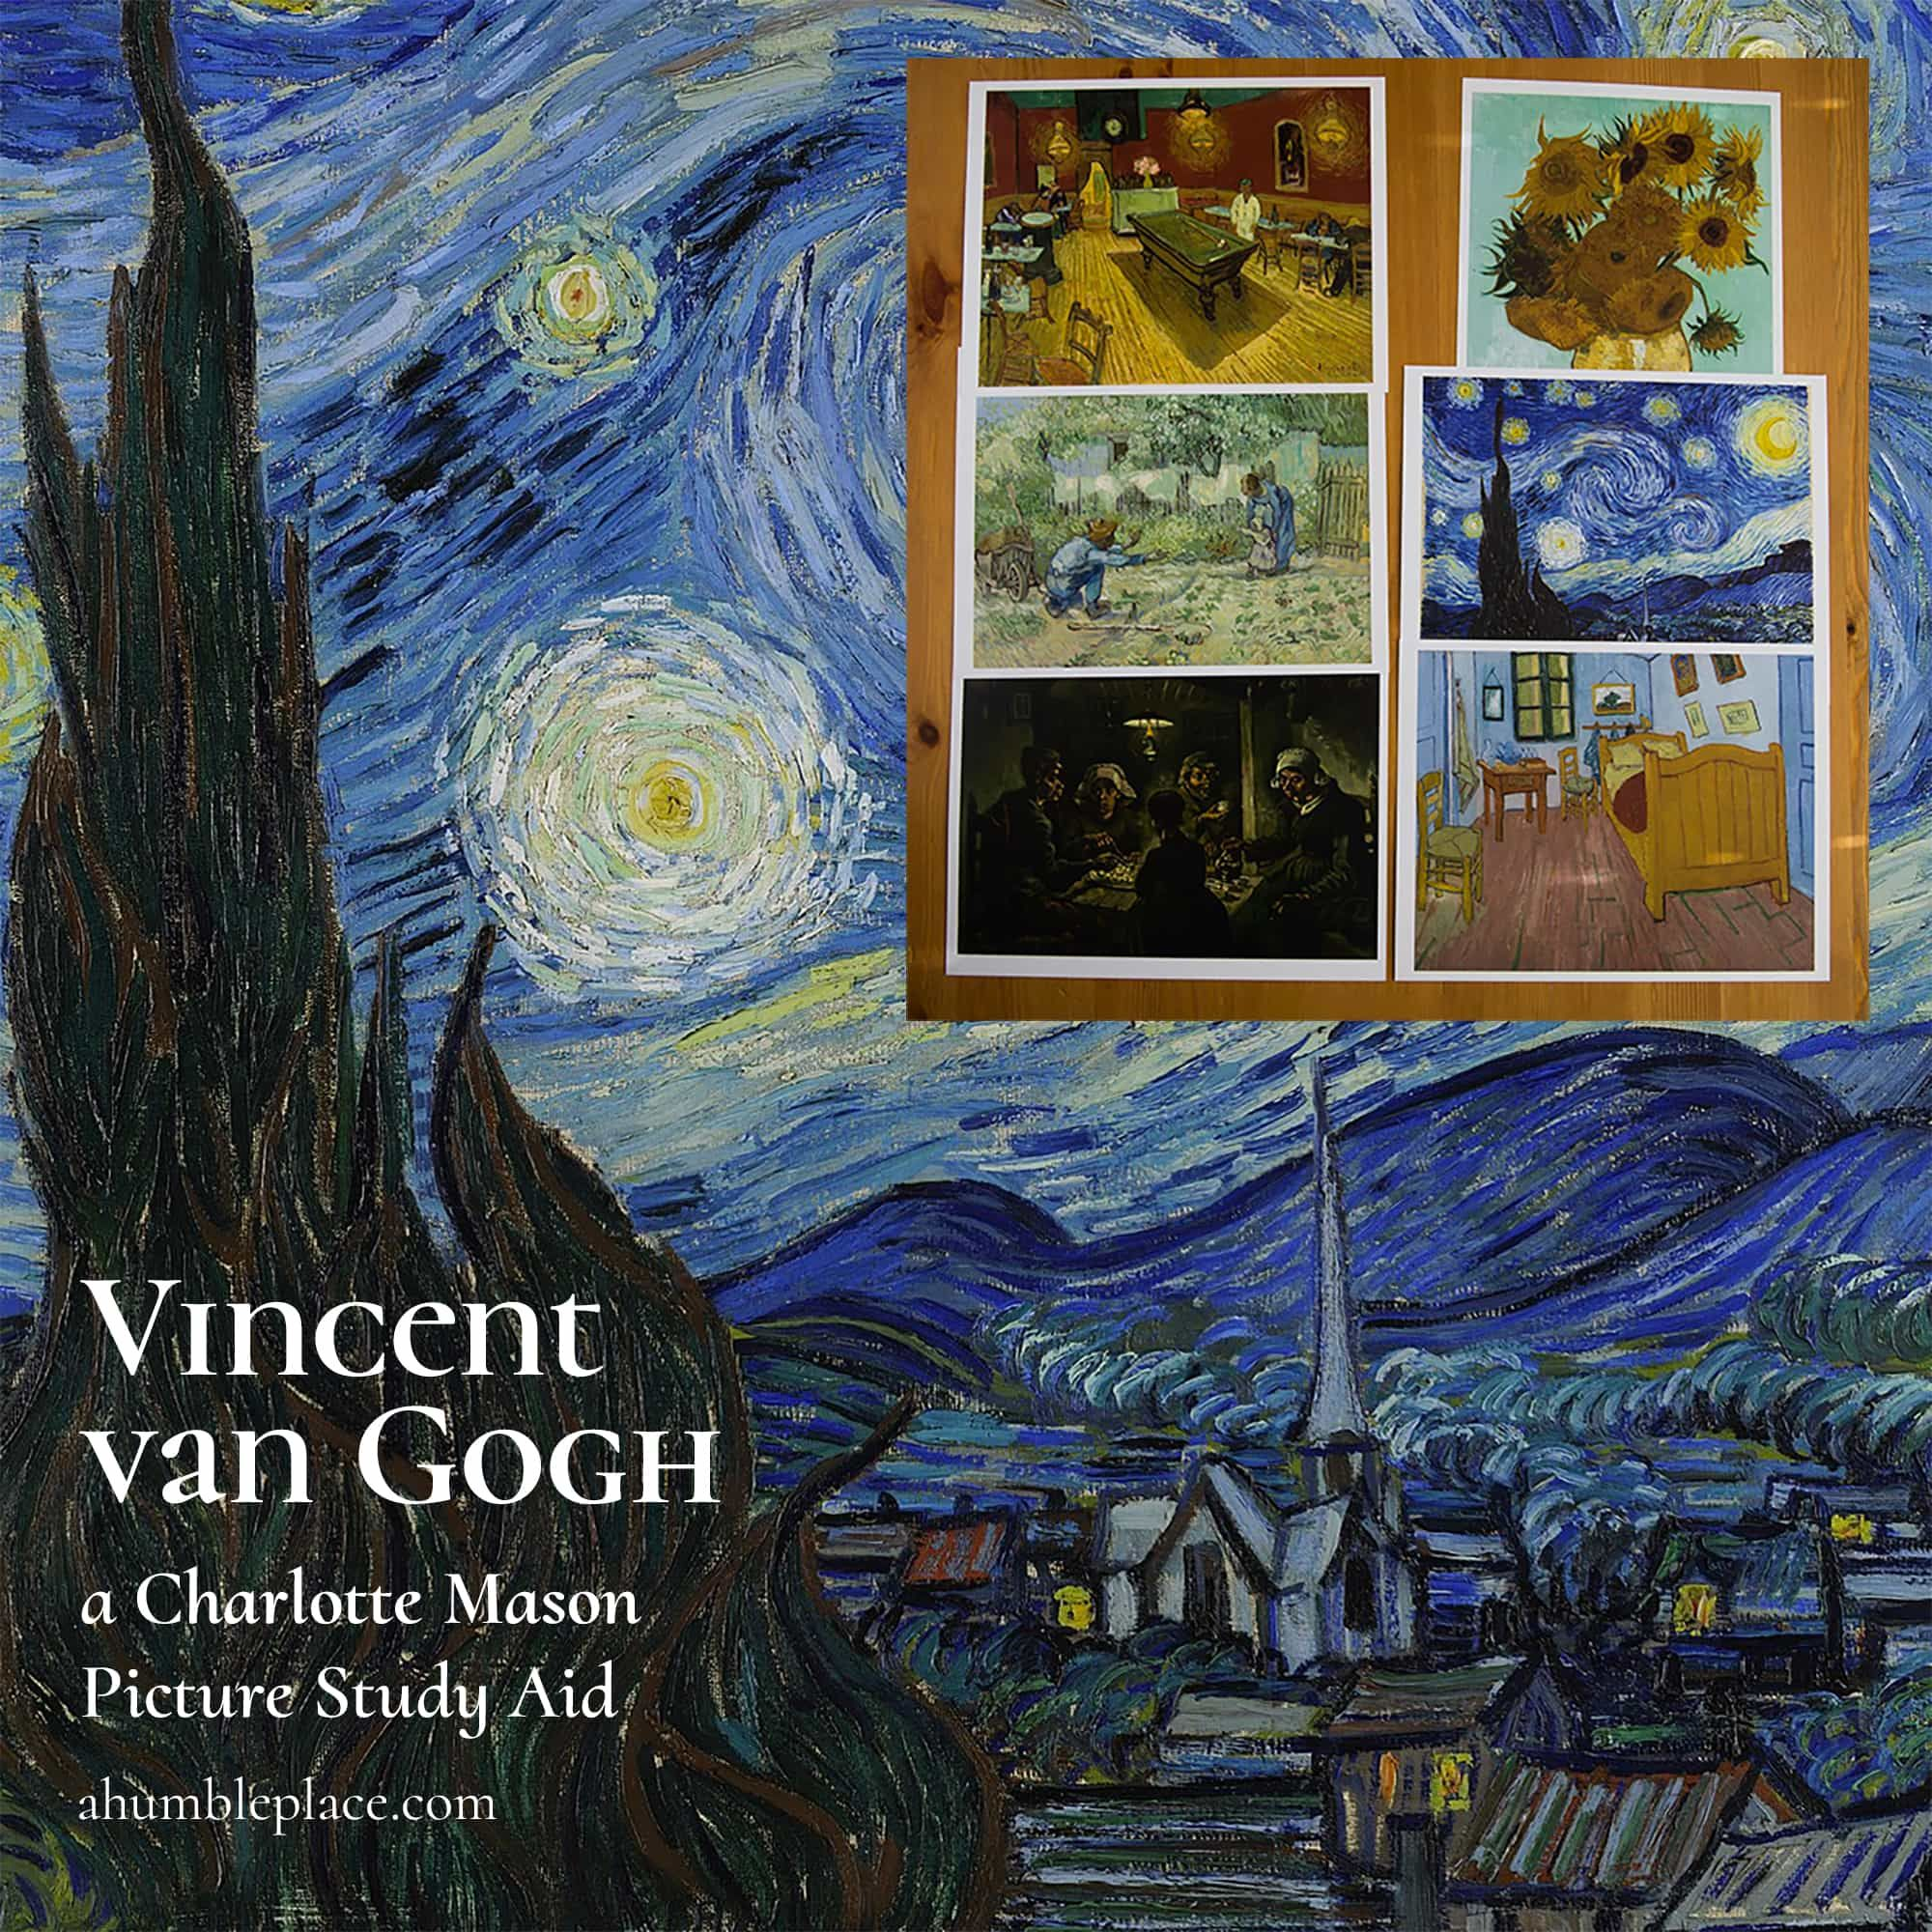 Vincent van Gogh: A Charlotte Mason Picture Study Aid and Prints #sunflowerbedroomideas